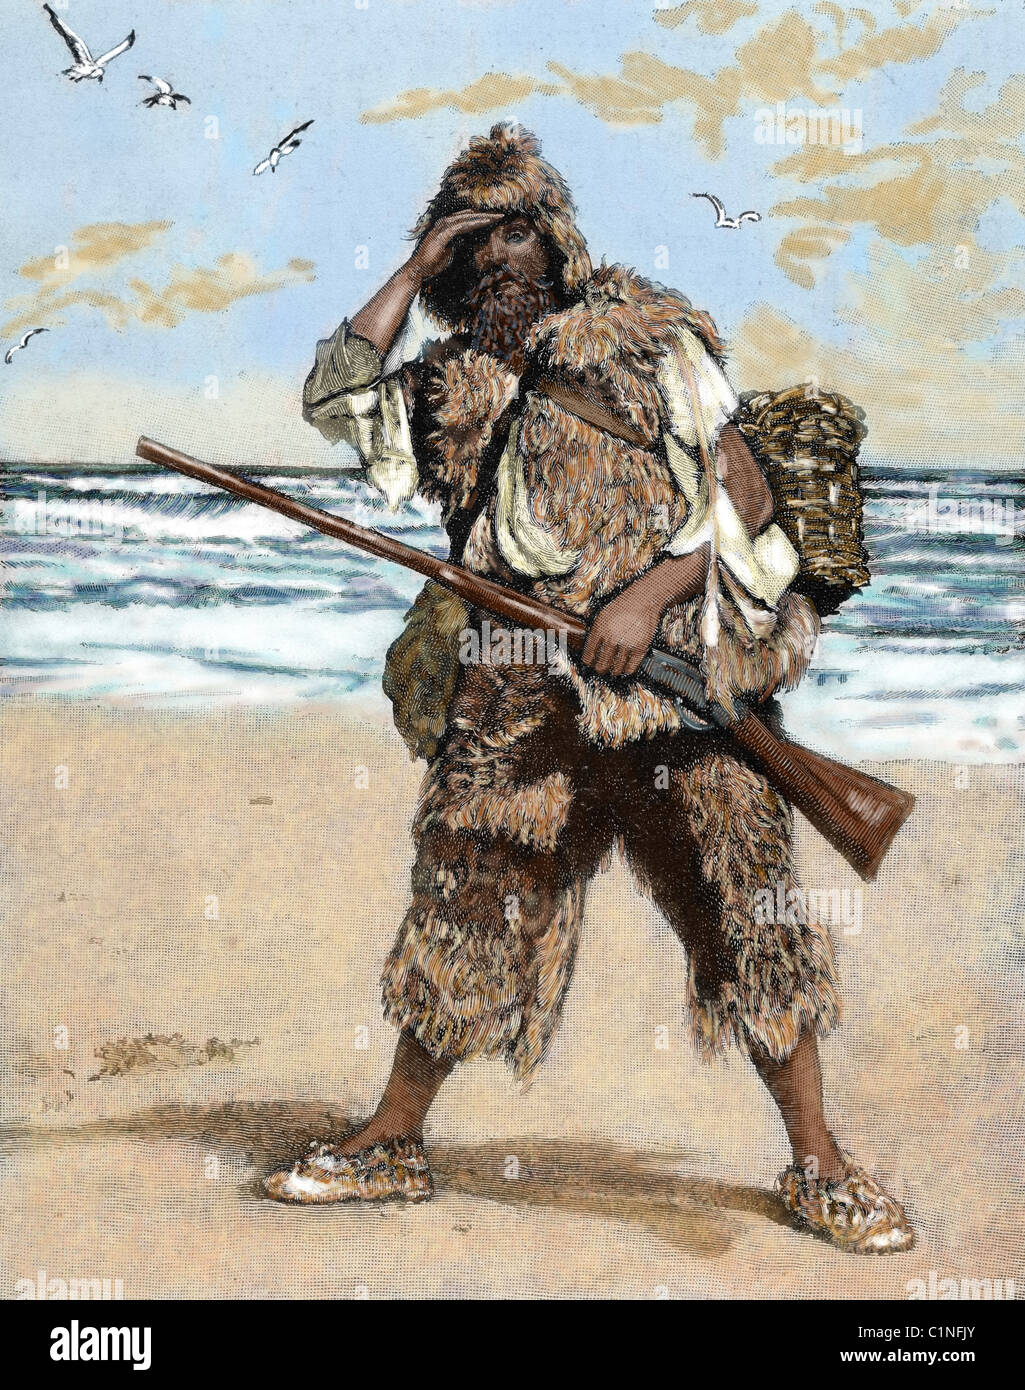 Literature Robinson Crusoe Daniel Defoe Stock Photos  Literature